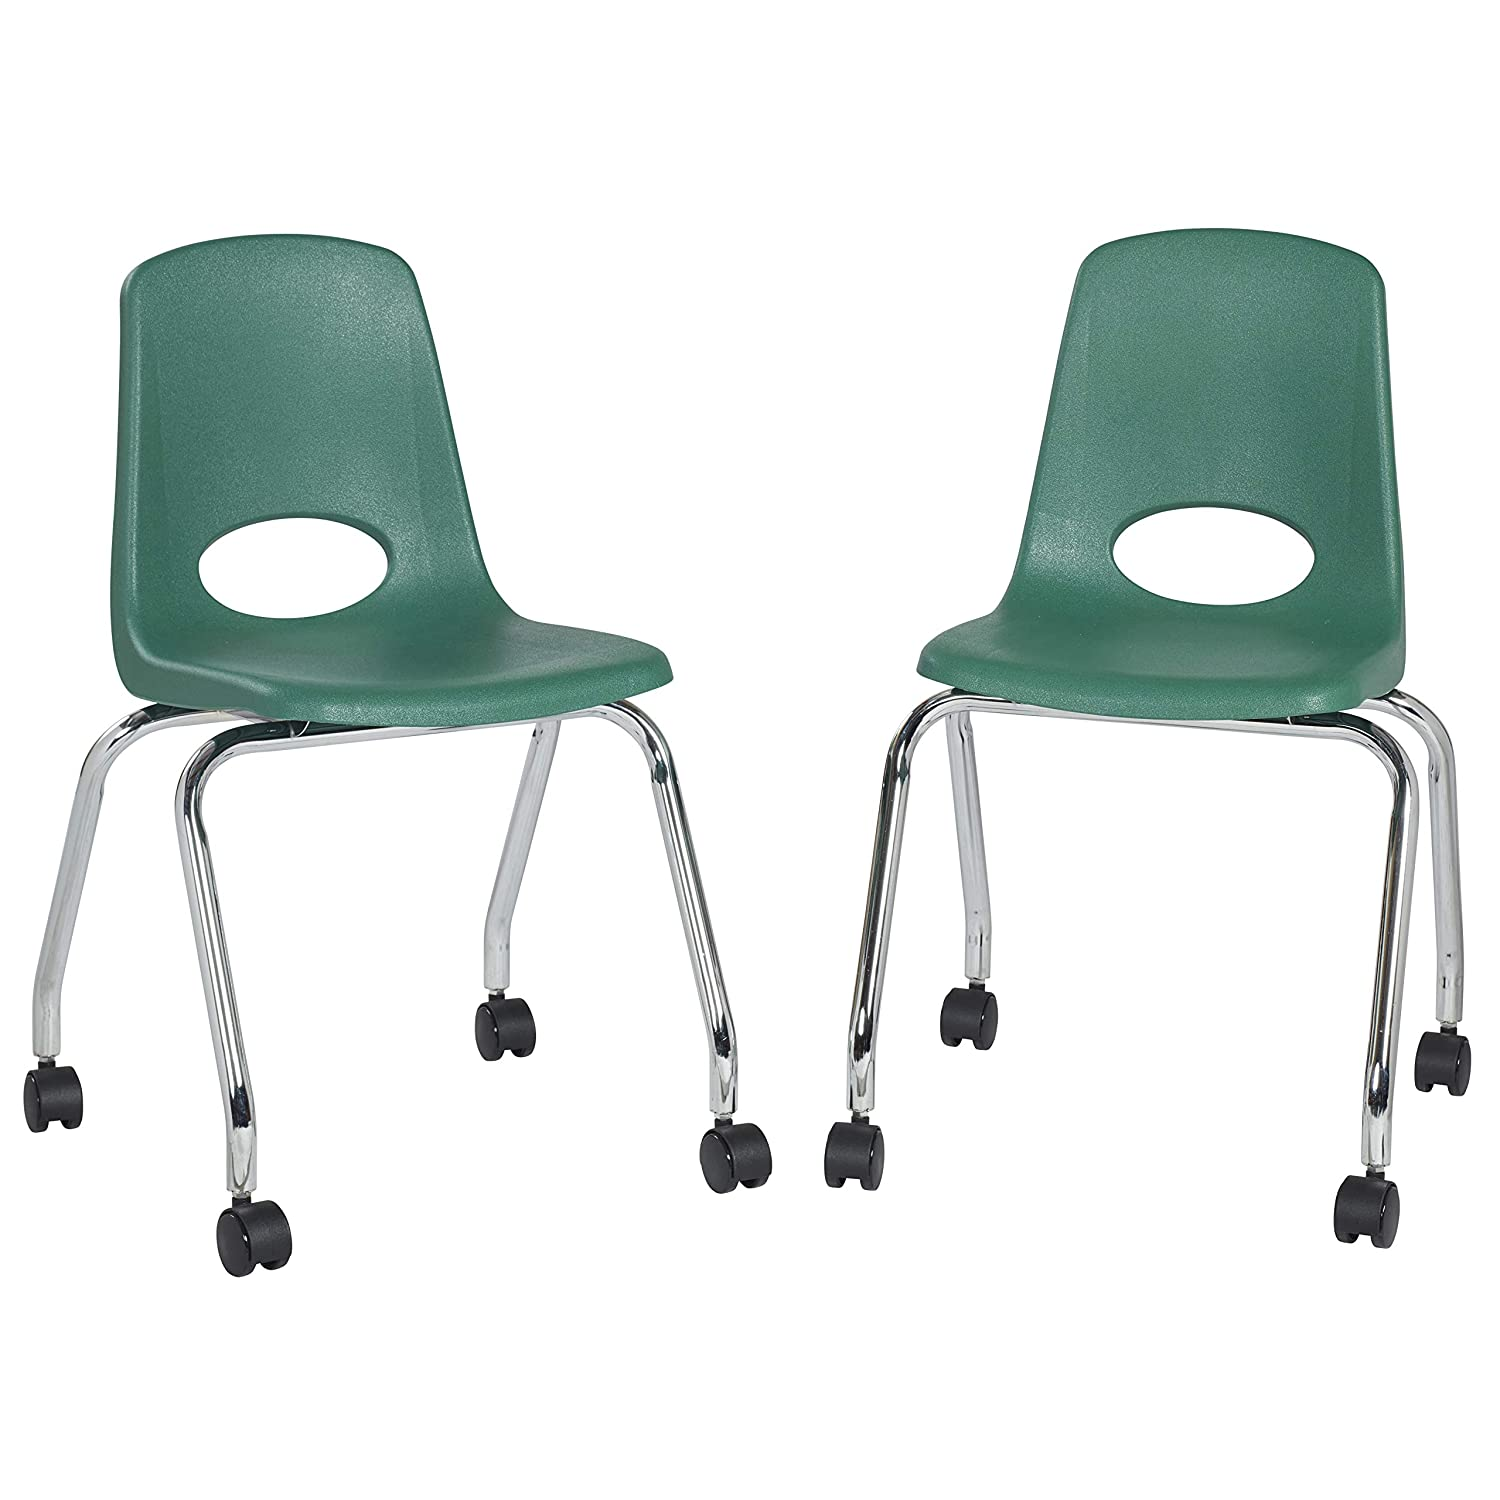 "Factory Direct Partners 18"" Mobile School Chair with Wheels for Kids, Teens and Adults; Ergonomic Seat for in-Home Learning, Classroom or Office - Green (2-Pack) (10372-GN)"